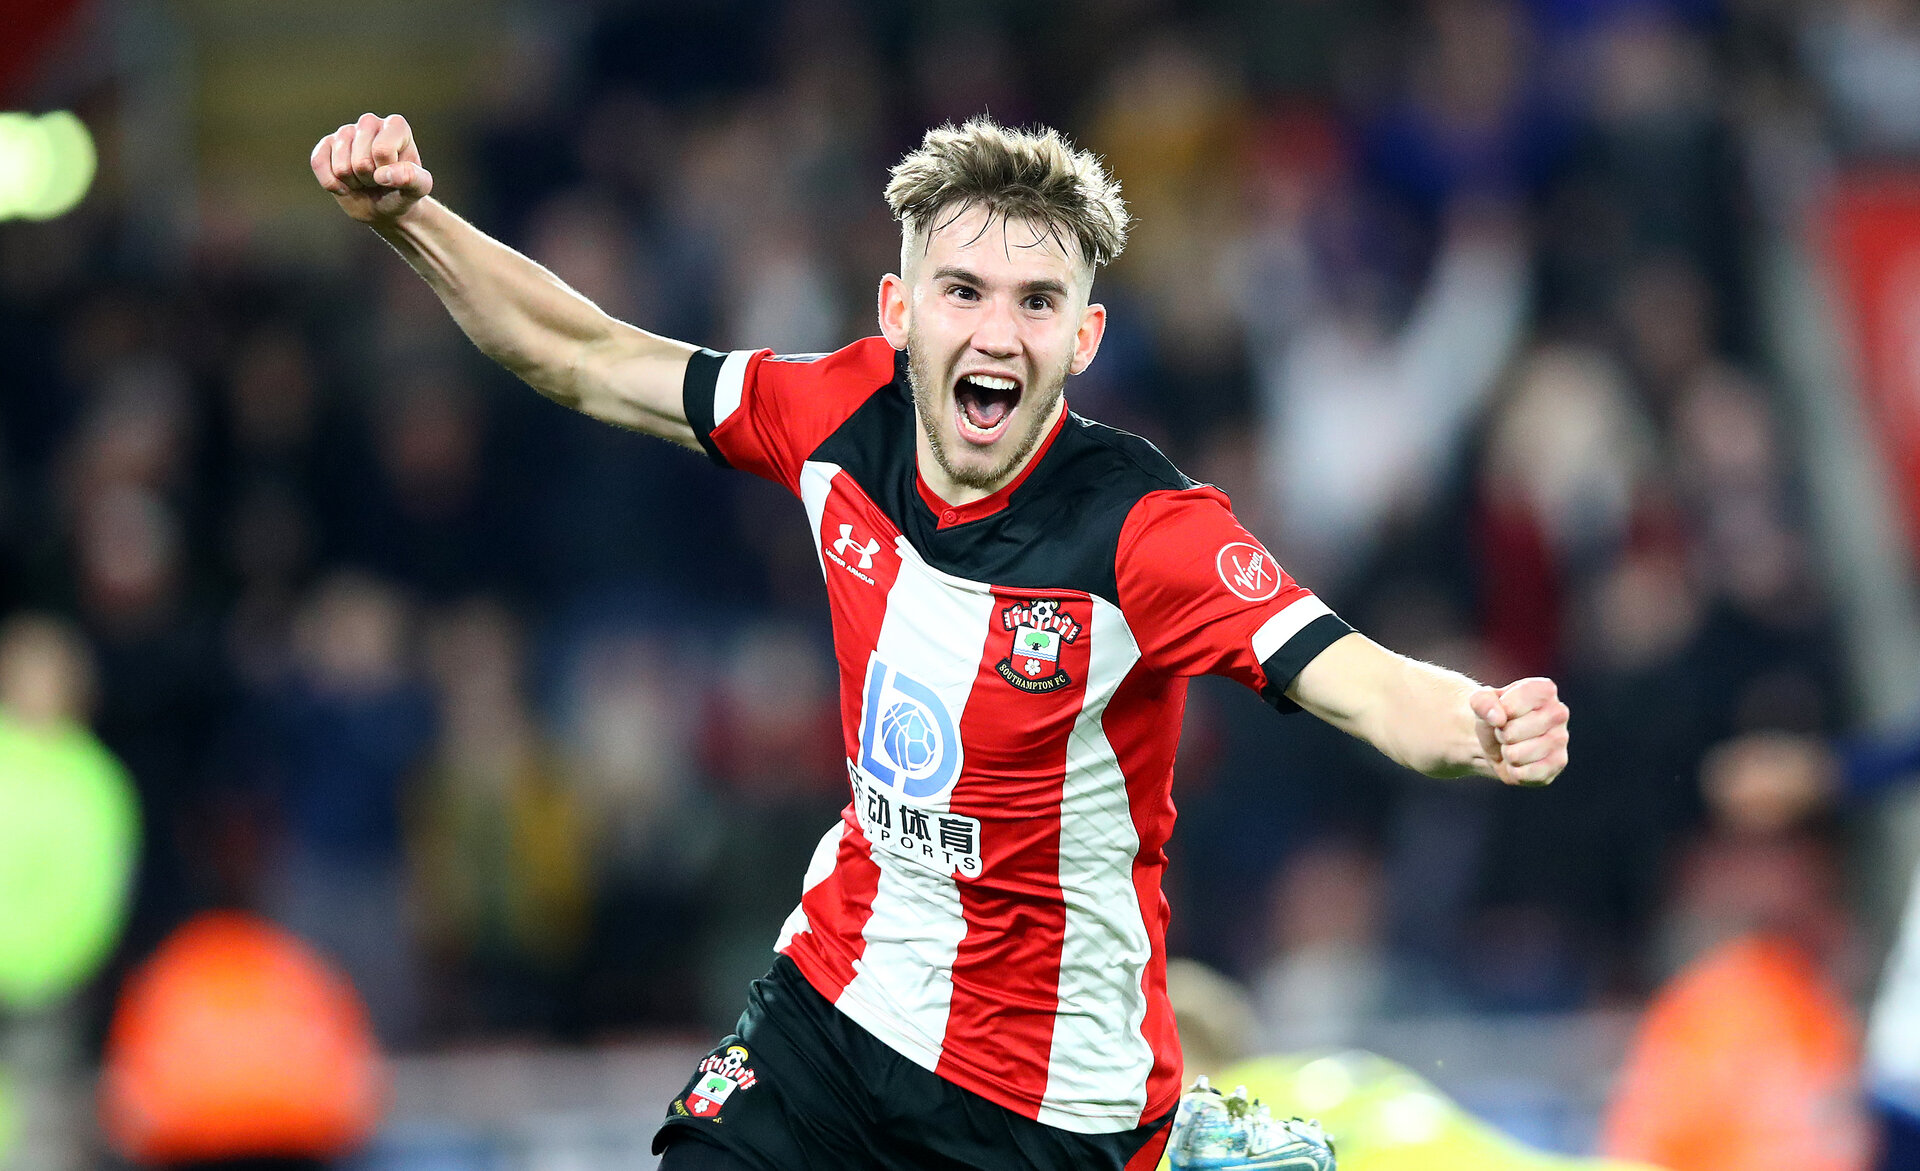 SOUTHAMPTON, ENGLAND - JANUARY 04:  during the FA Cup Third Round match between Southampton FC and Huddersfield Town at St. Mary's Stadium on January 04, 2020 in Southampton, England. (Photo by Matt Watson/Getty Images)